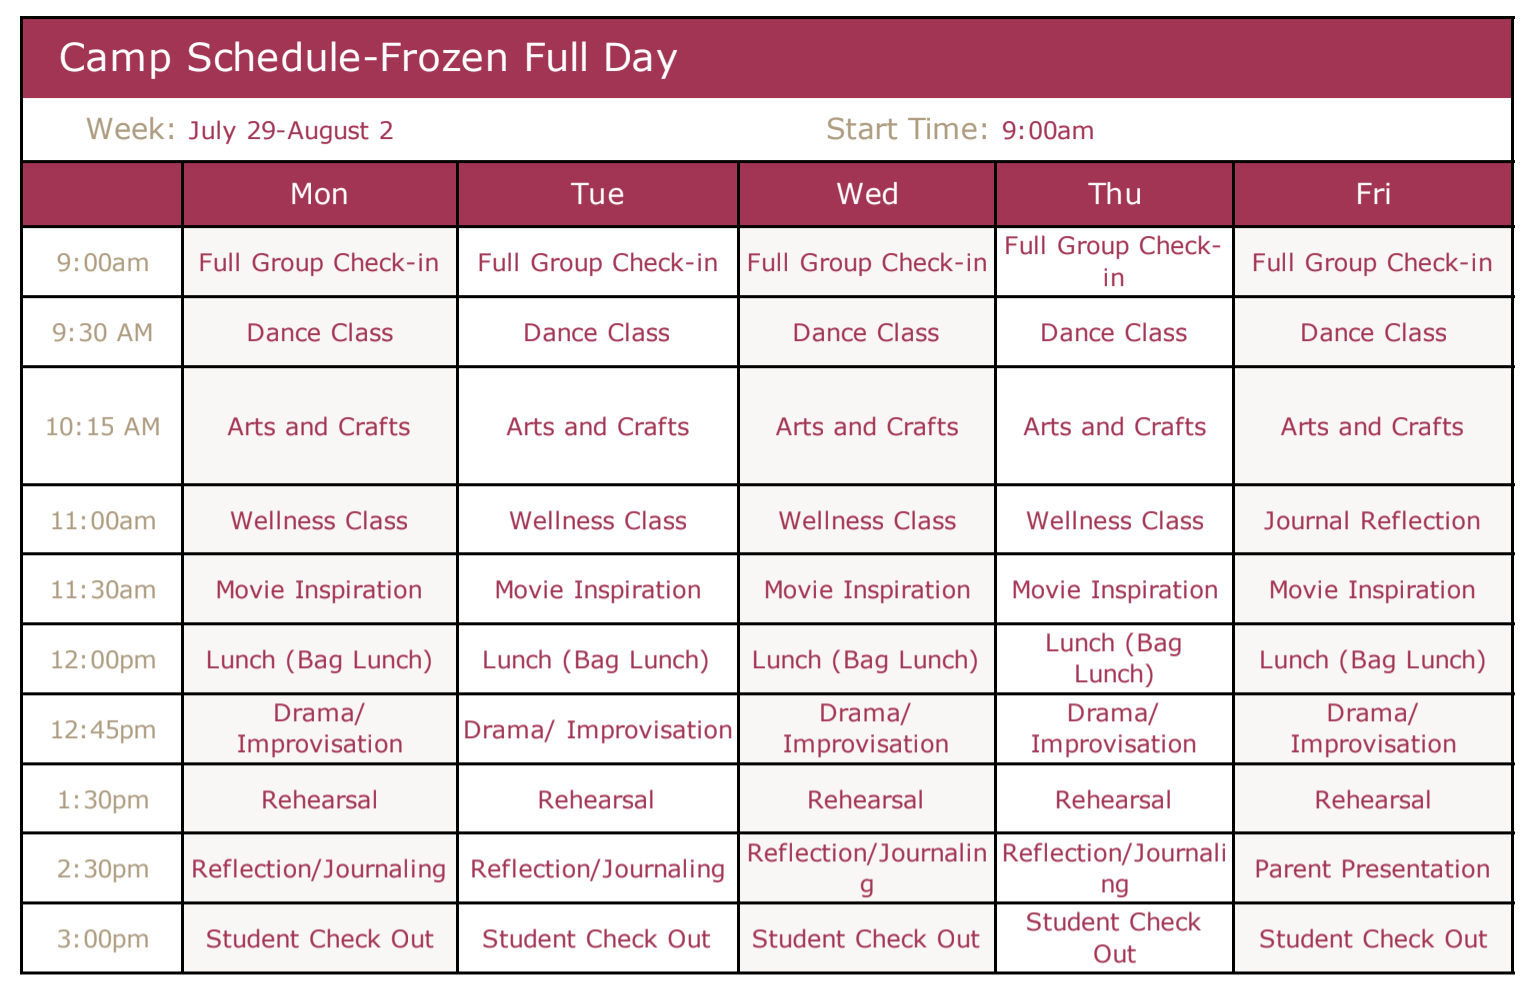 Frozen Full Day Schedule